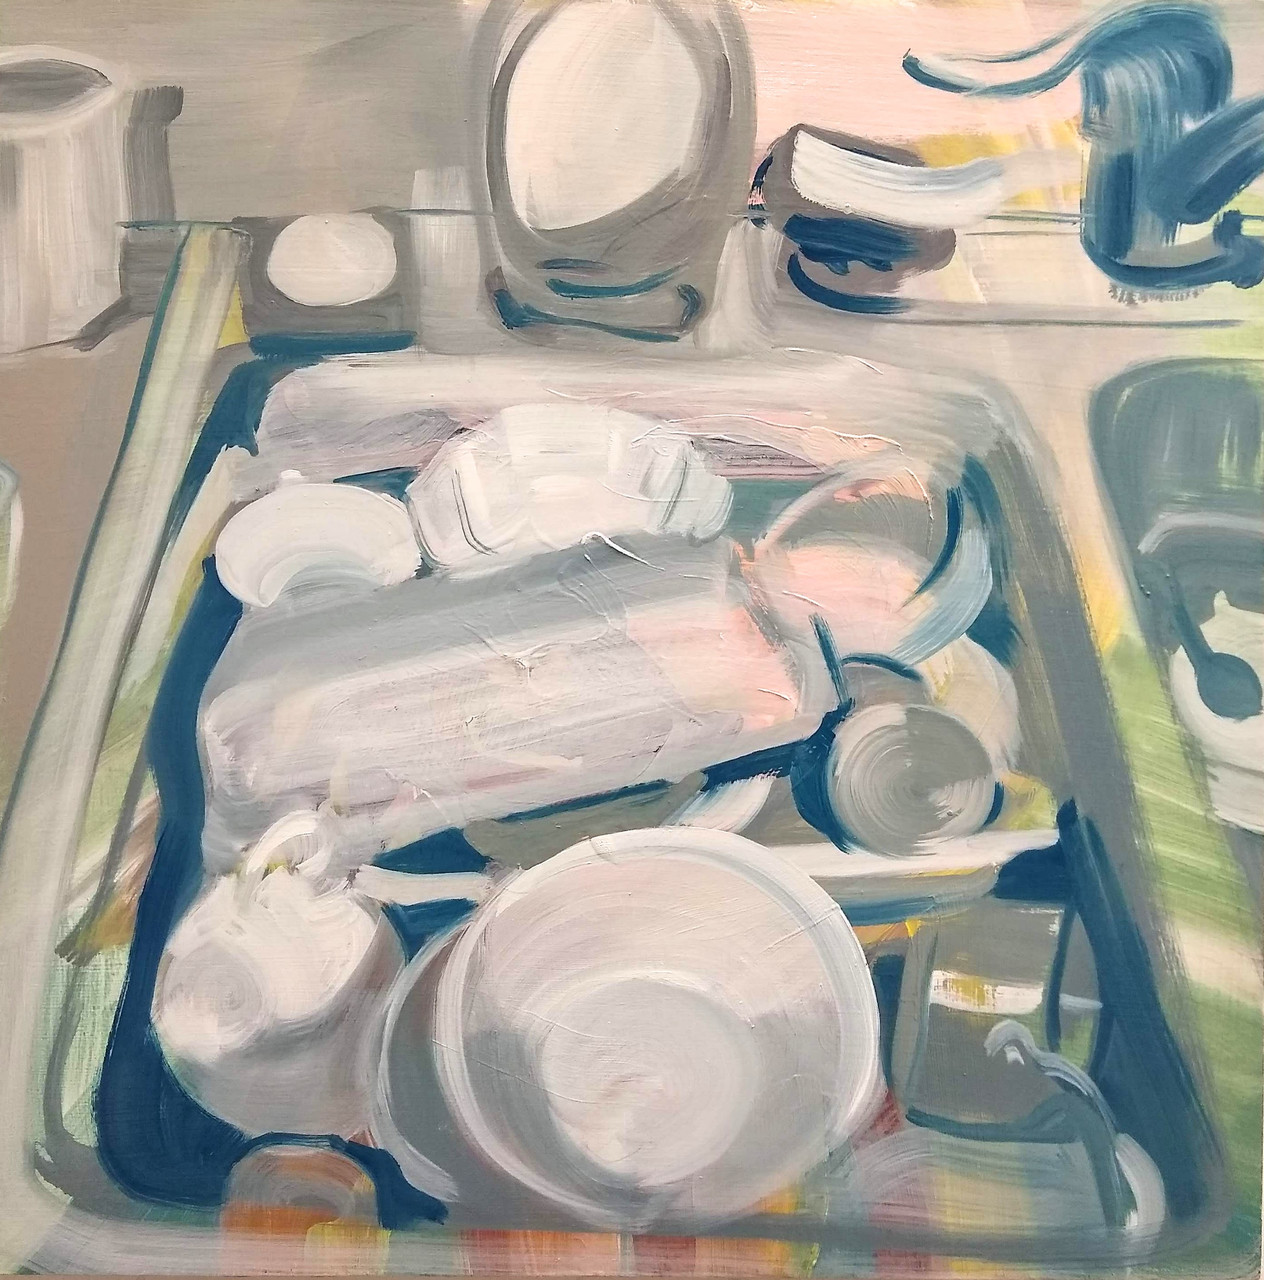 Countertop Still Life 11/14/19 painting by Noël Ash.